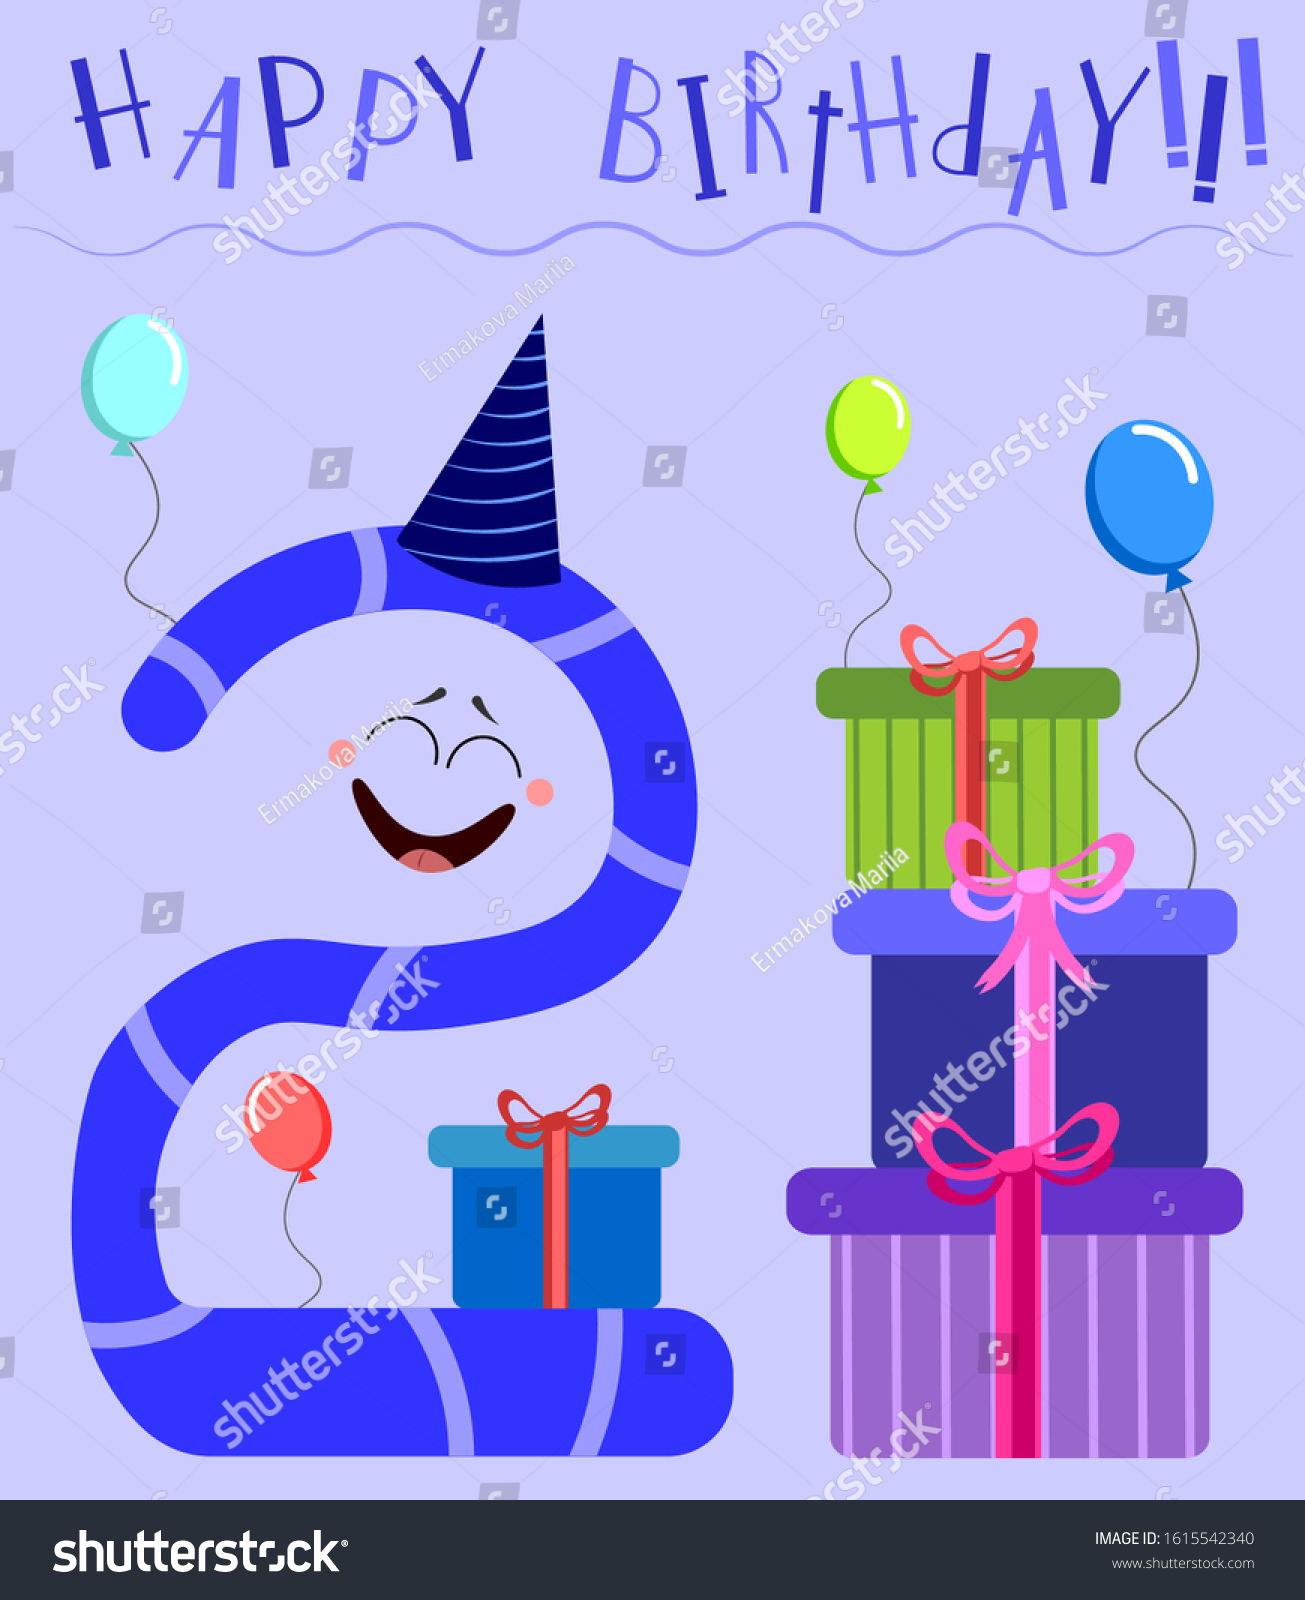 https www shutterstock com image vector greeting card design gifts boxes balloons 1615542340